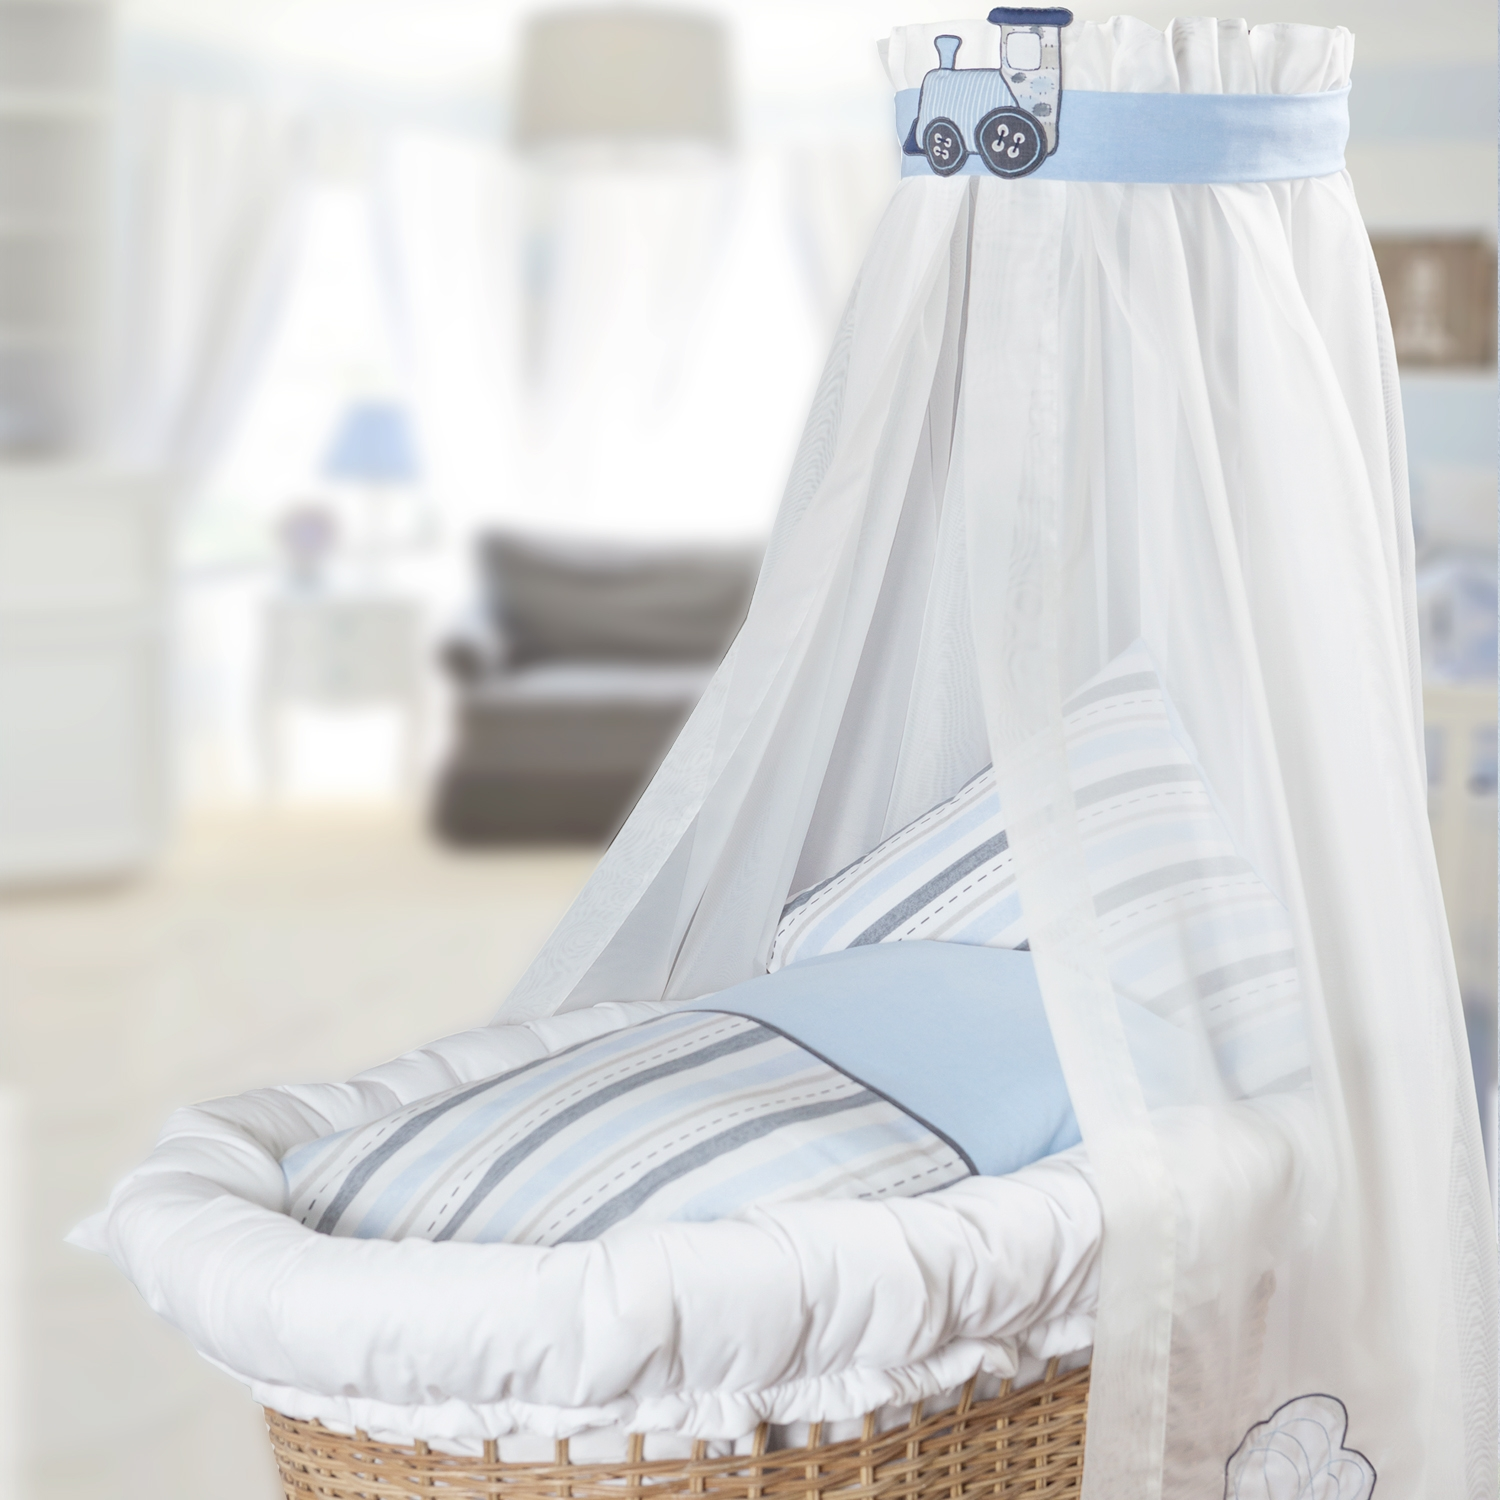 bassinet train - Bassinet Bedding